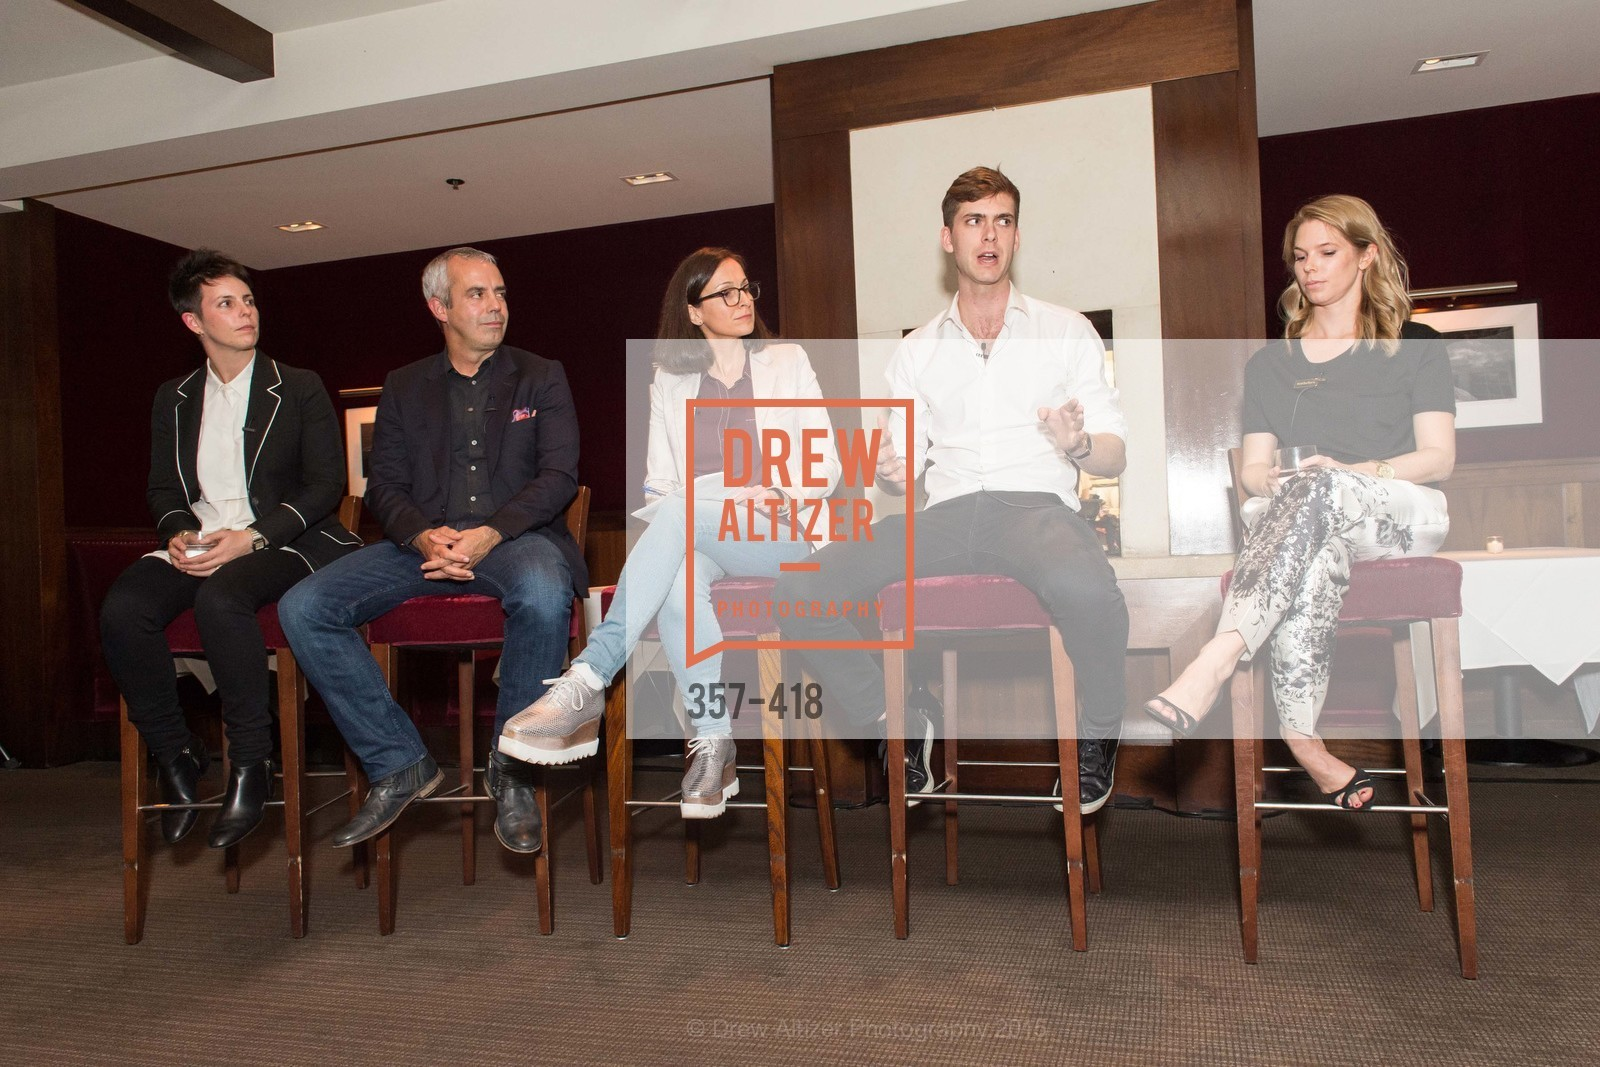 Jessica Silverman, Kevin Johnson, Sarah Thornton, Carter Cleveland, Courtney Kremers, Artsy and Sotheby's Village Pub Dinner, Village Pub, October 27th, 2015,Drew Altizer, Drew Altizer Photography, full-service agency, private events, San Francisco photographer, photographer california